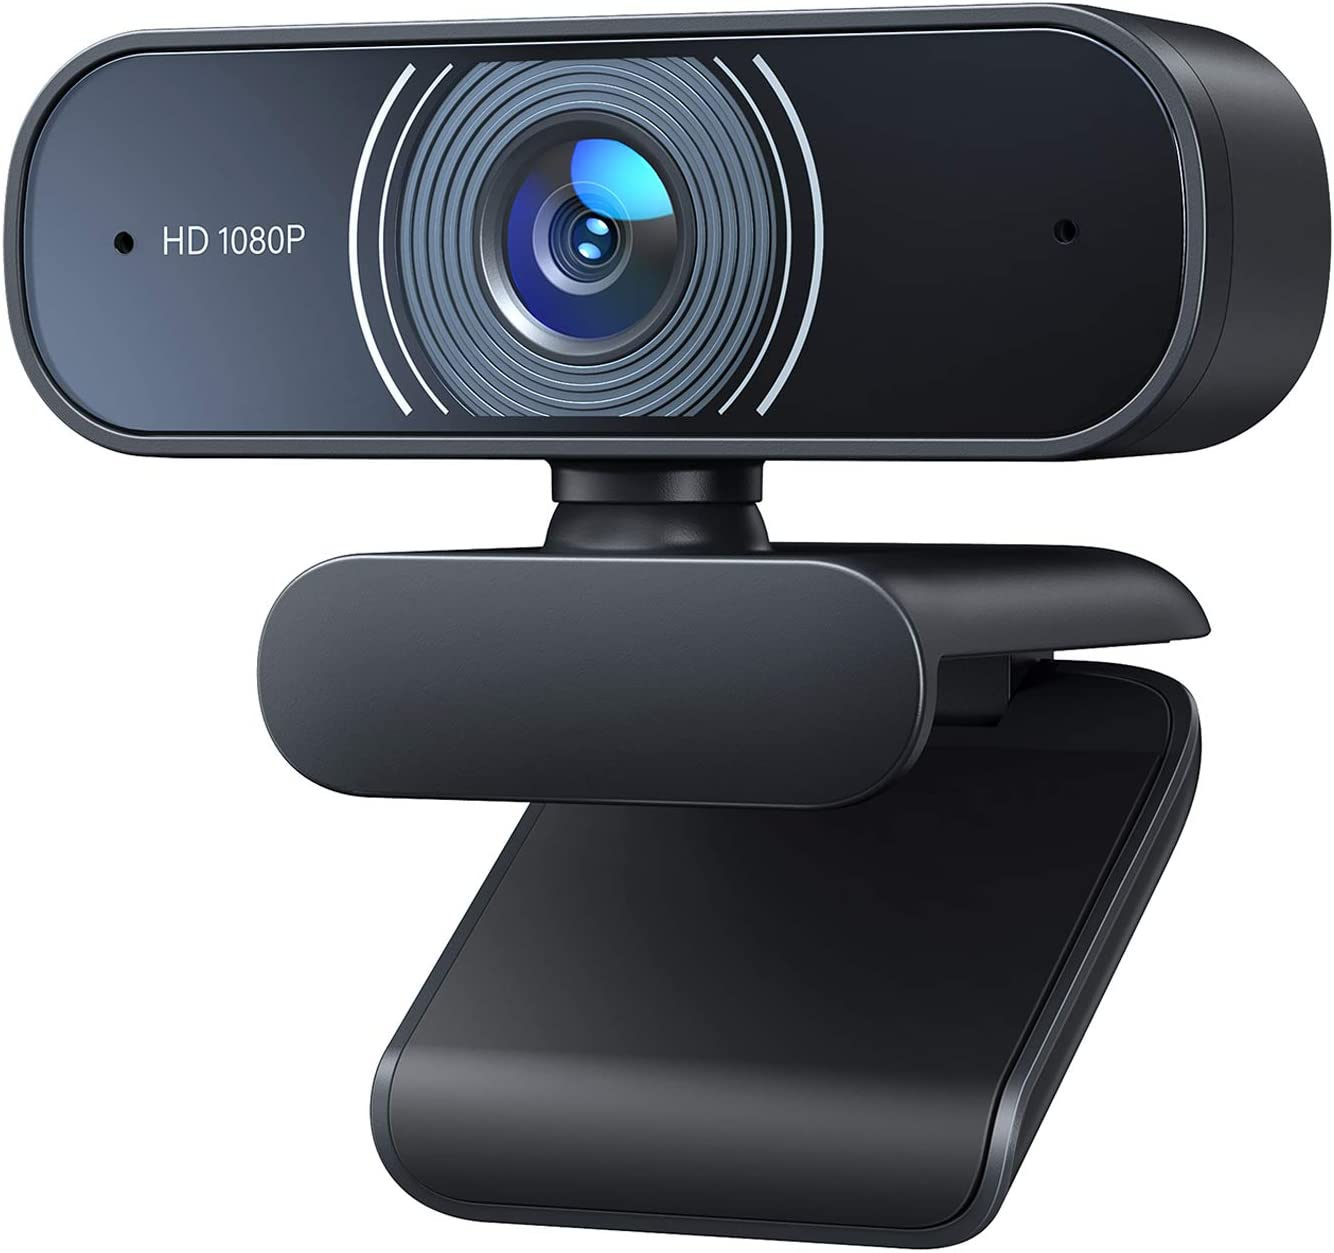 RALENO 1080P Webcam, Dual Built-in Microphones, Full HD Video Camera for Computers PC Laptop Desktop, USB Plug and Play, Conference Video Calling, Streaming: Electronics